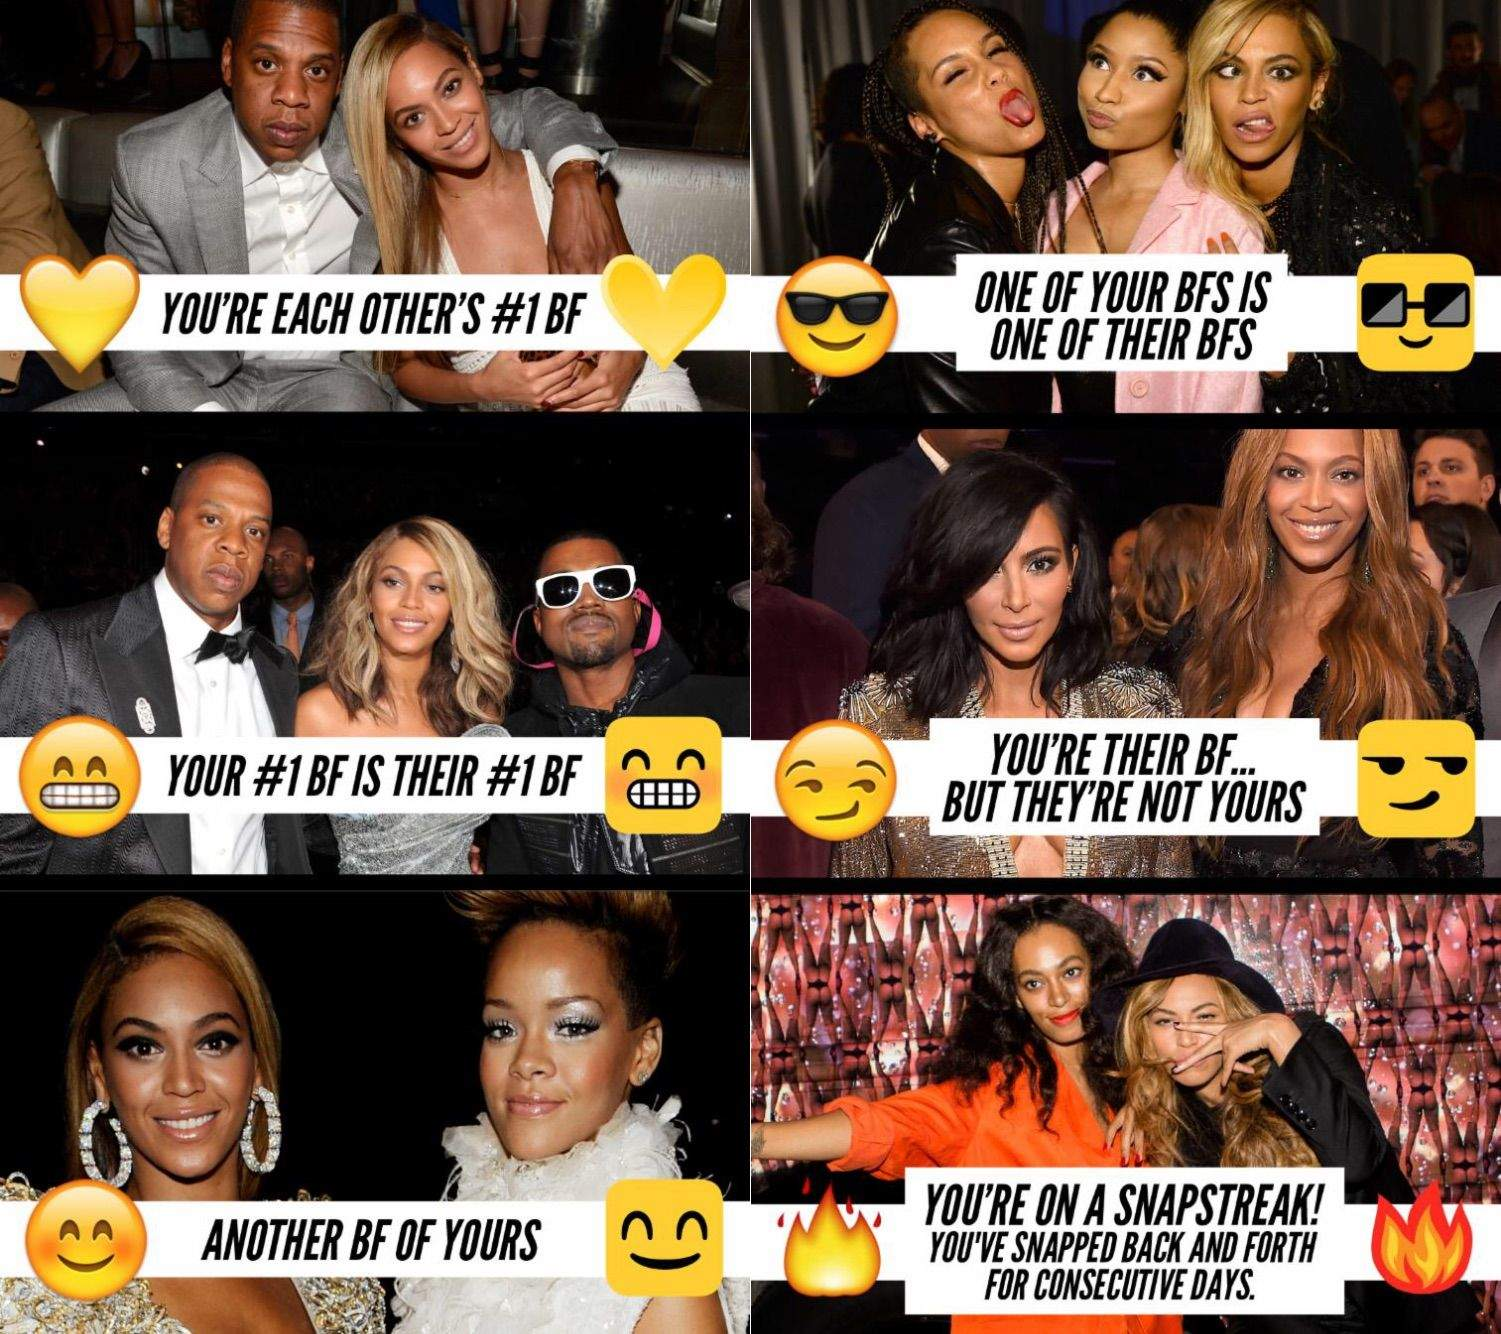 A guide to understanding the new snapchat emojis heres what they mean buycottarizona Image collections